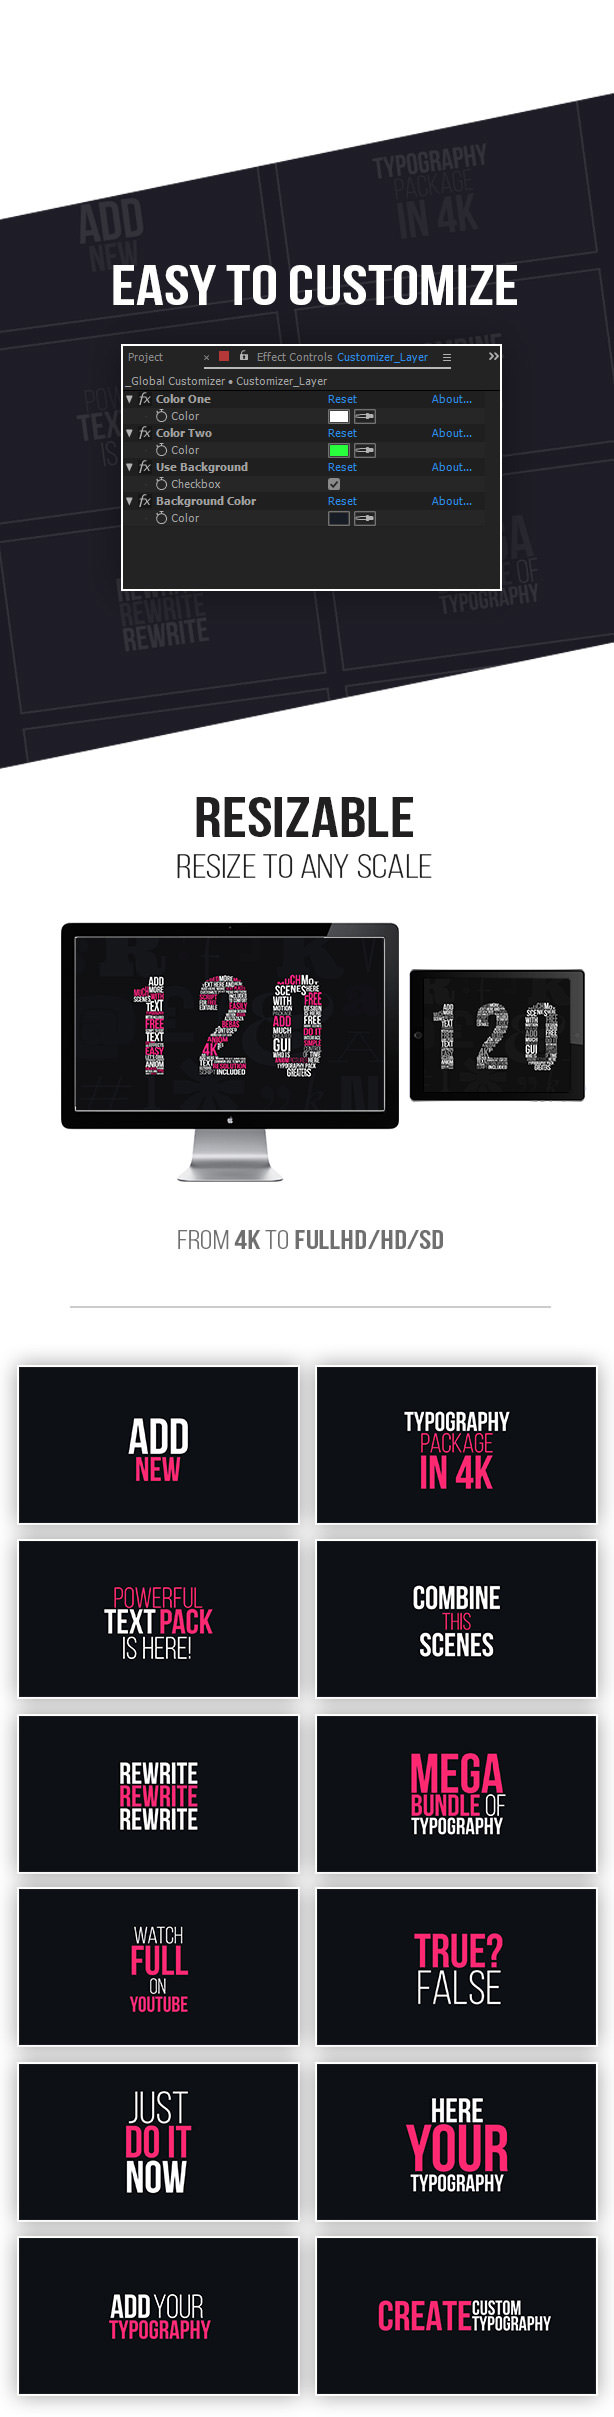 Kinetic Typography 4K Package   Typography Tool - 9